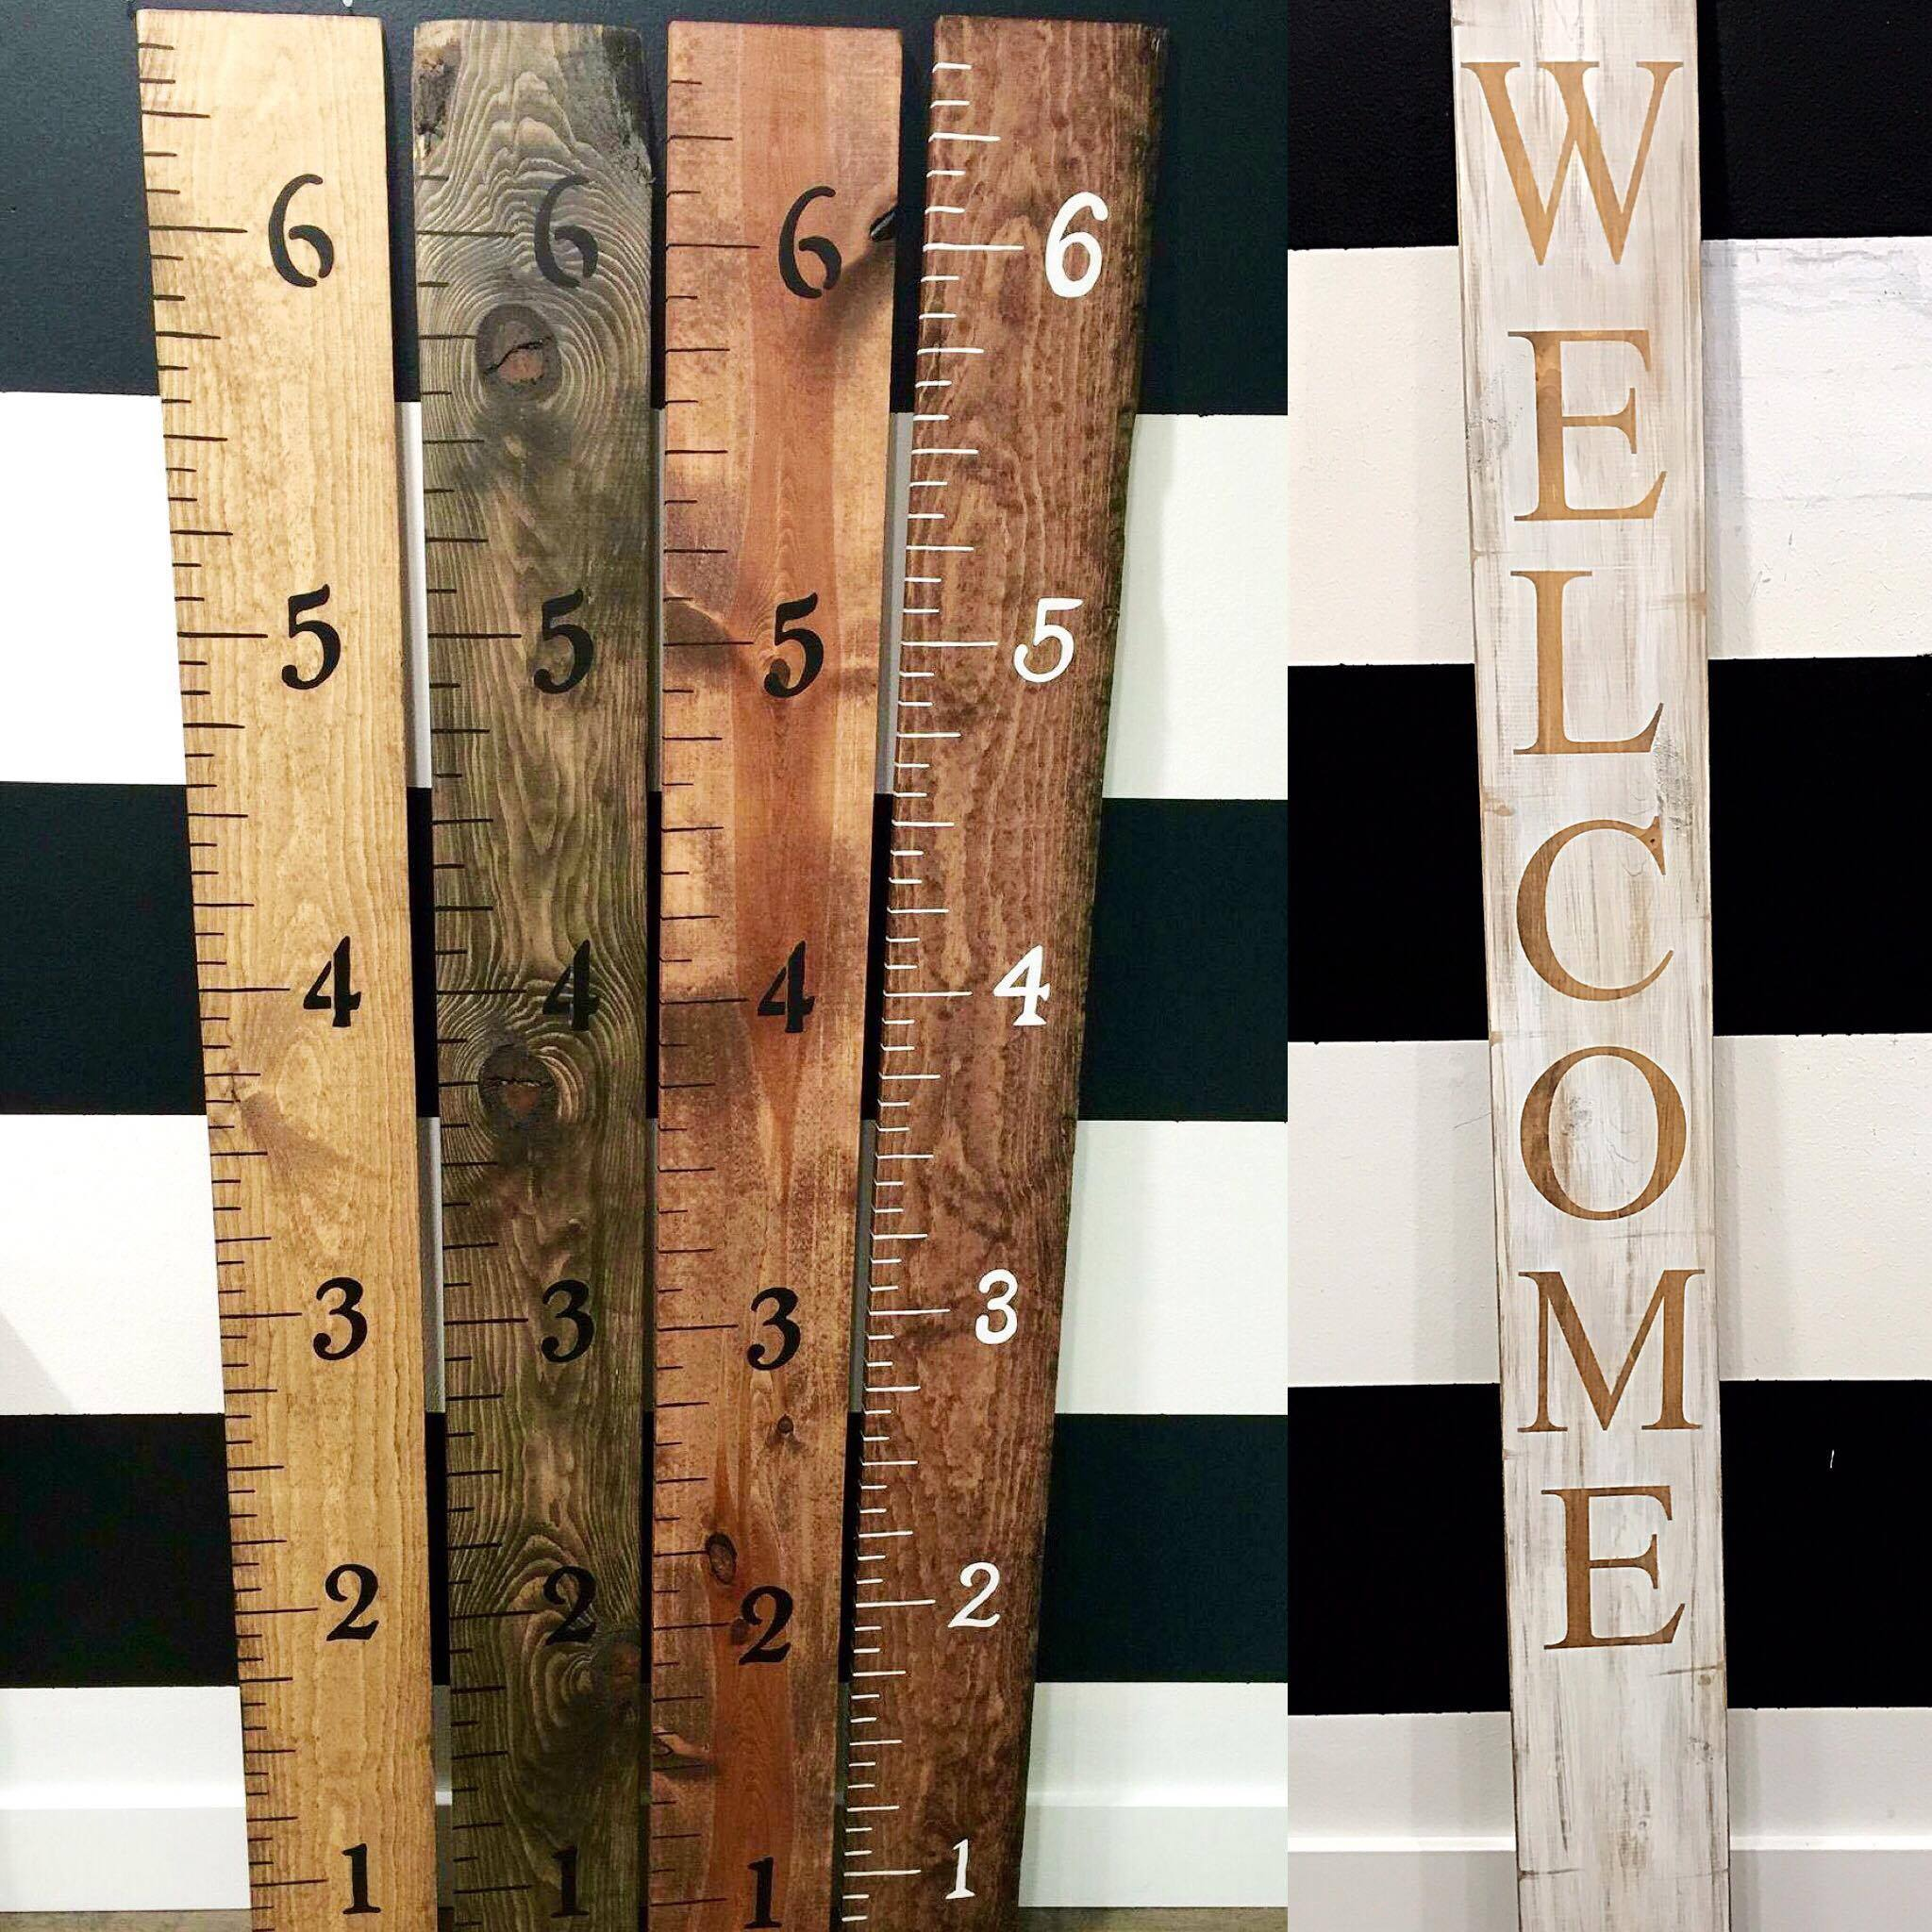 Ruler and Welcome sign